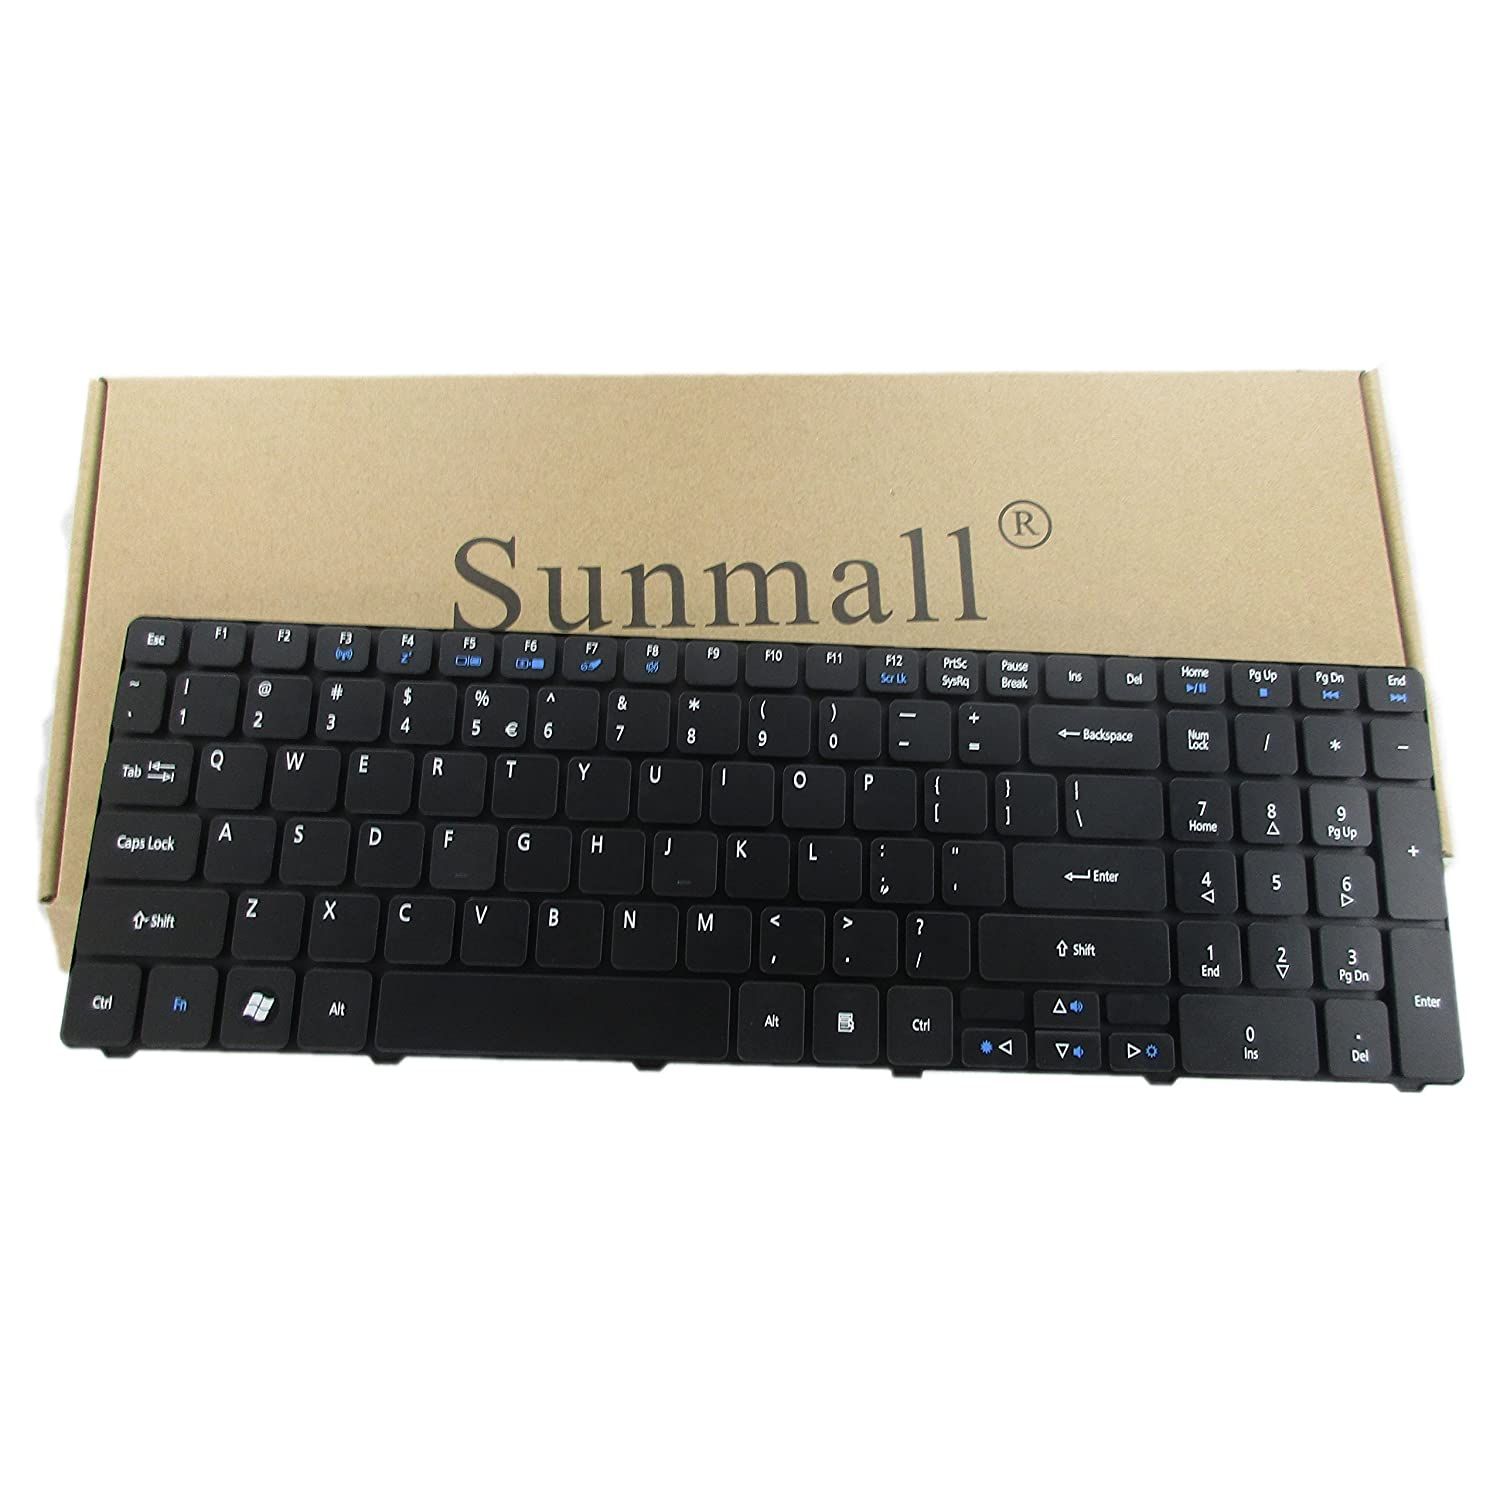 71e81c4cf905d SUNMALL a6 Laptop Keyboard Replacement for Acer Aspire for 5250 5251 5253  5336 5551 5552 5560